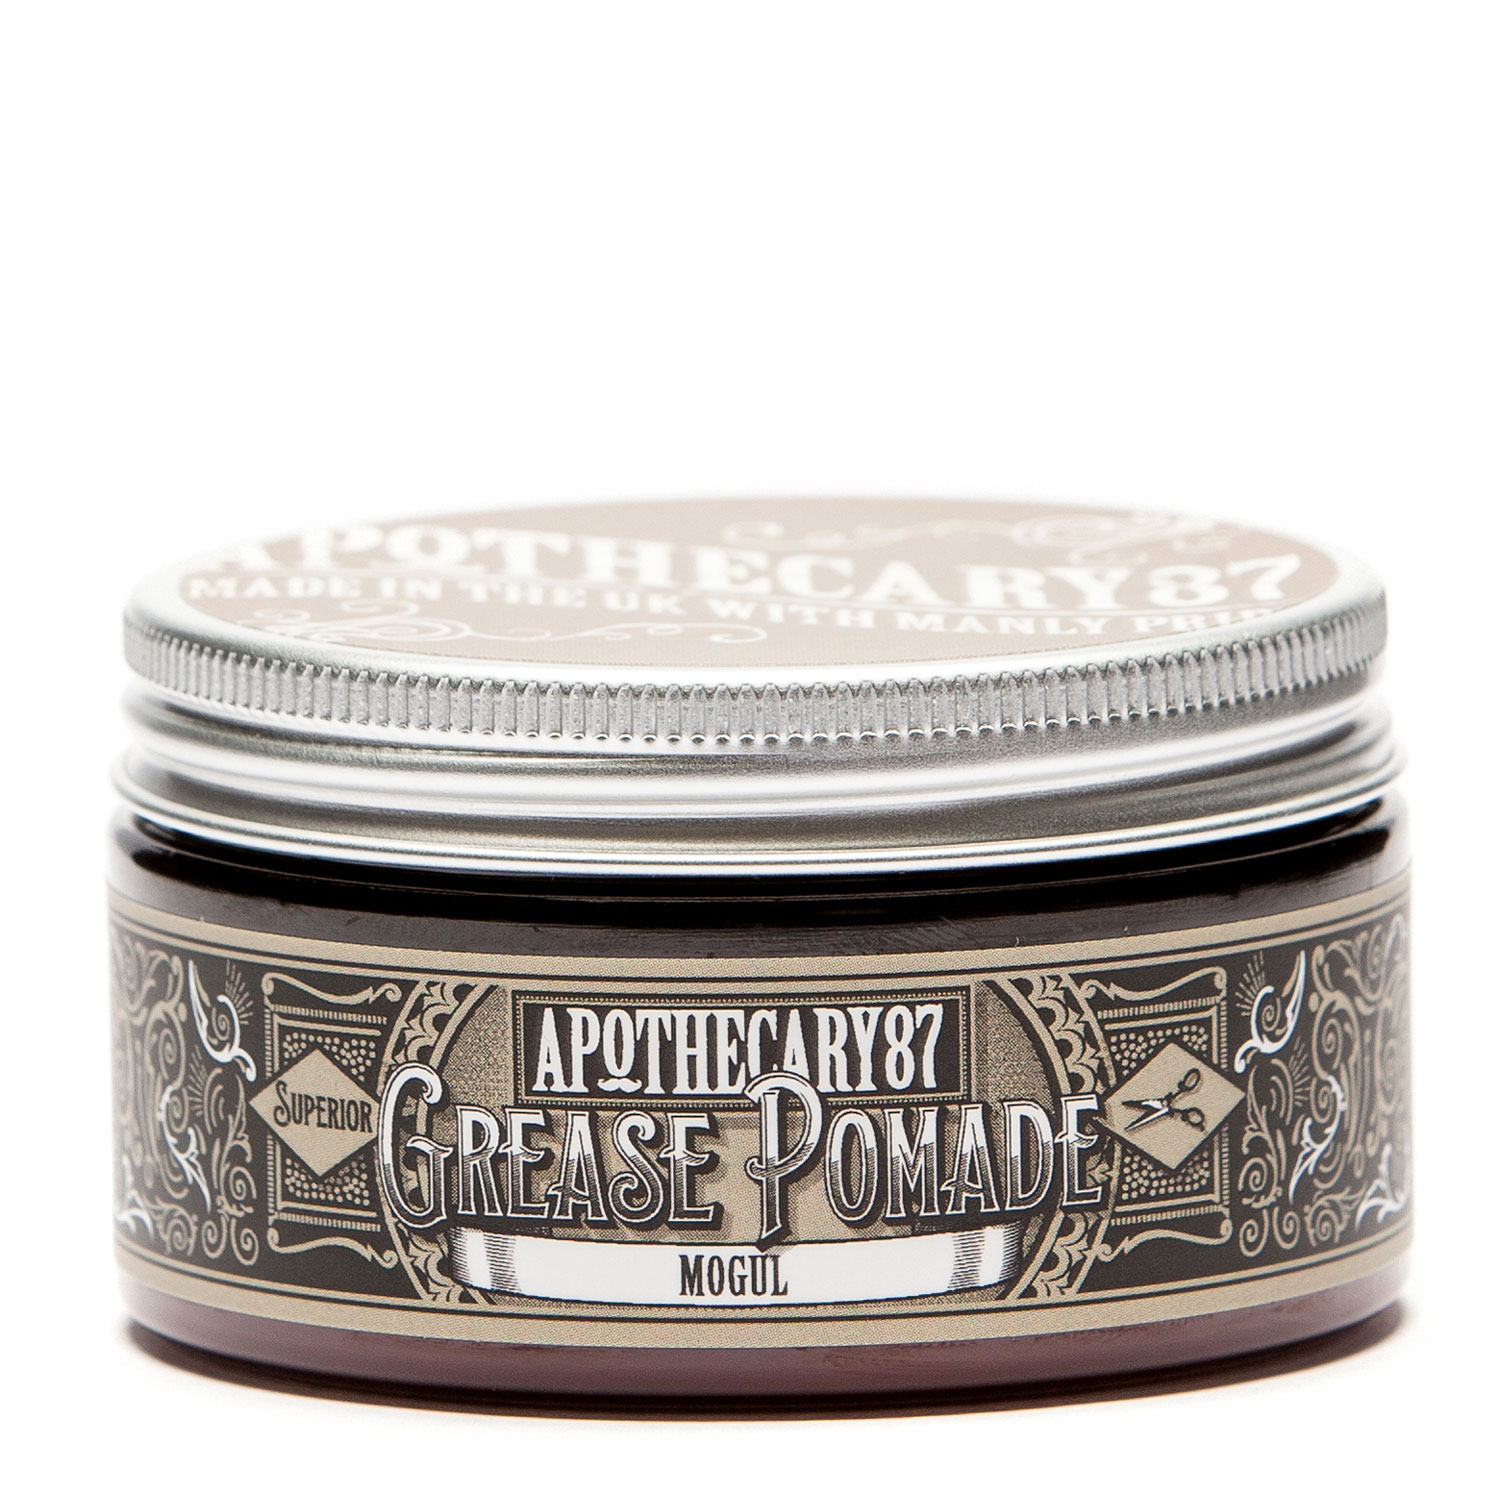 Apothecary87 Grooming - Grease Pomade Mogul Fragrance